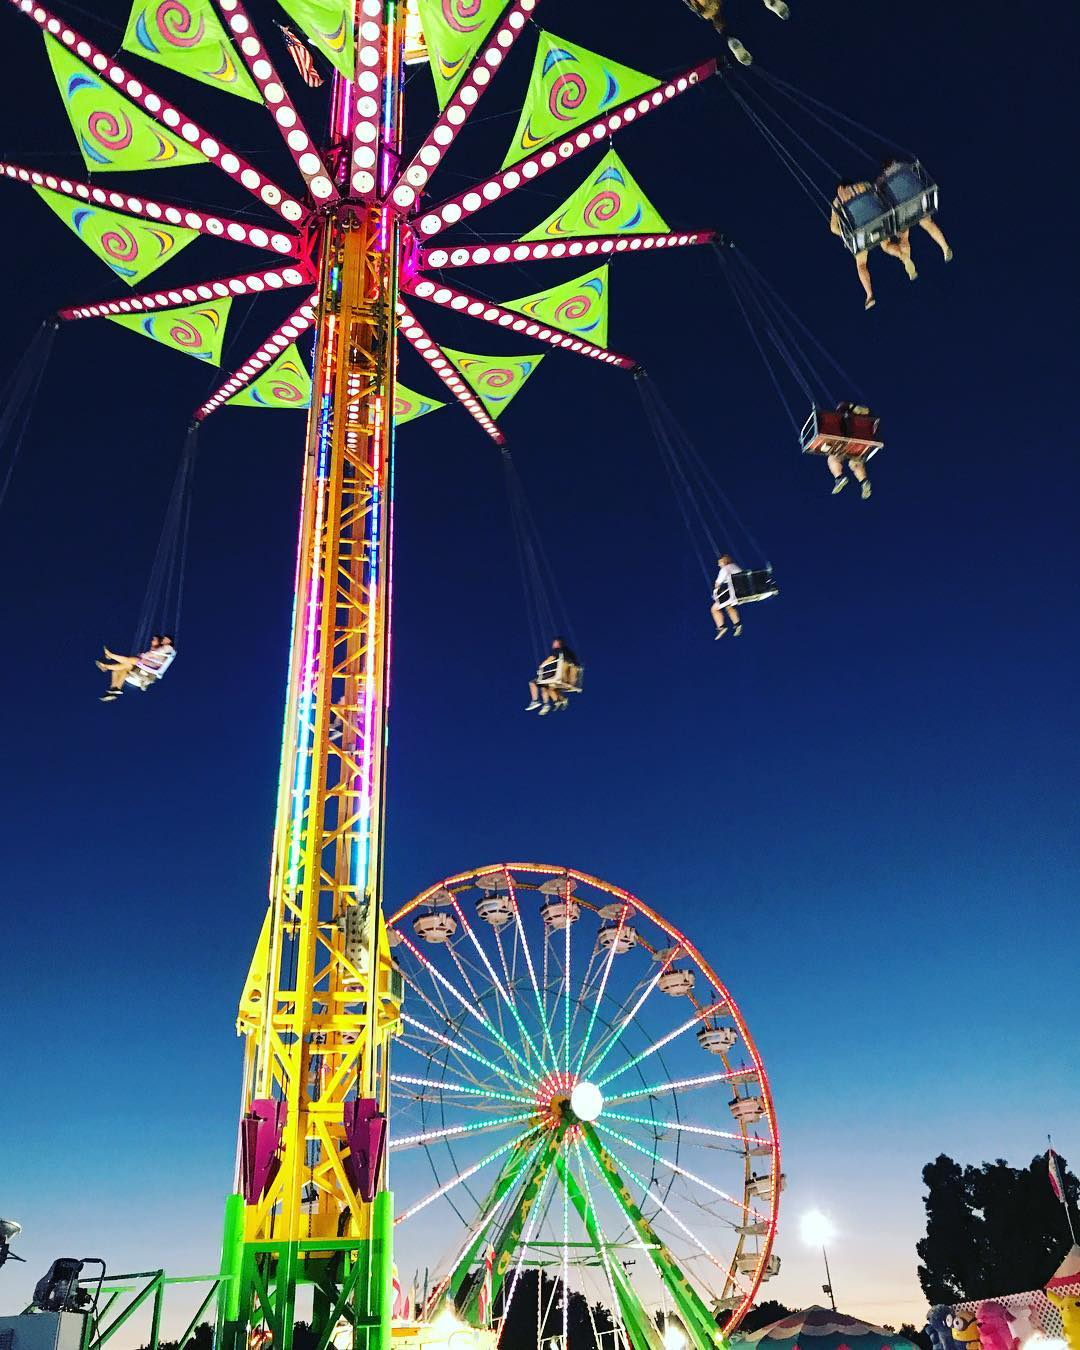 10 Reasons to Visit the Alameda County Fair